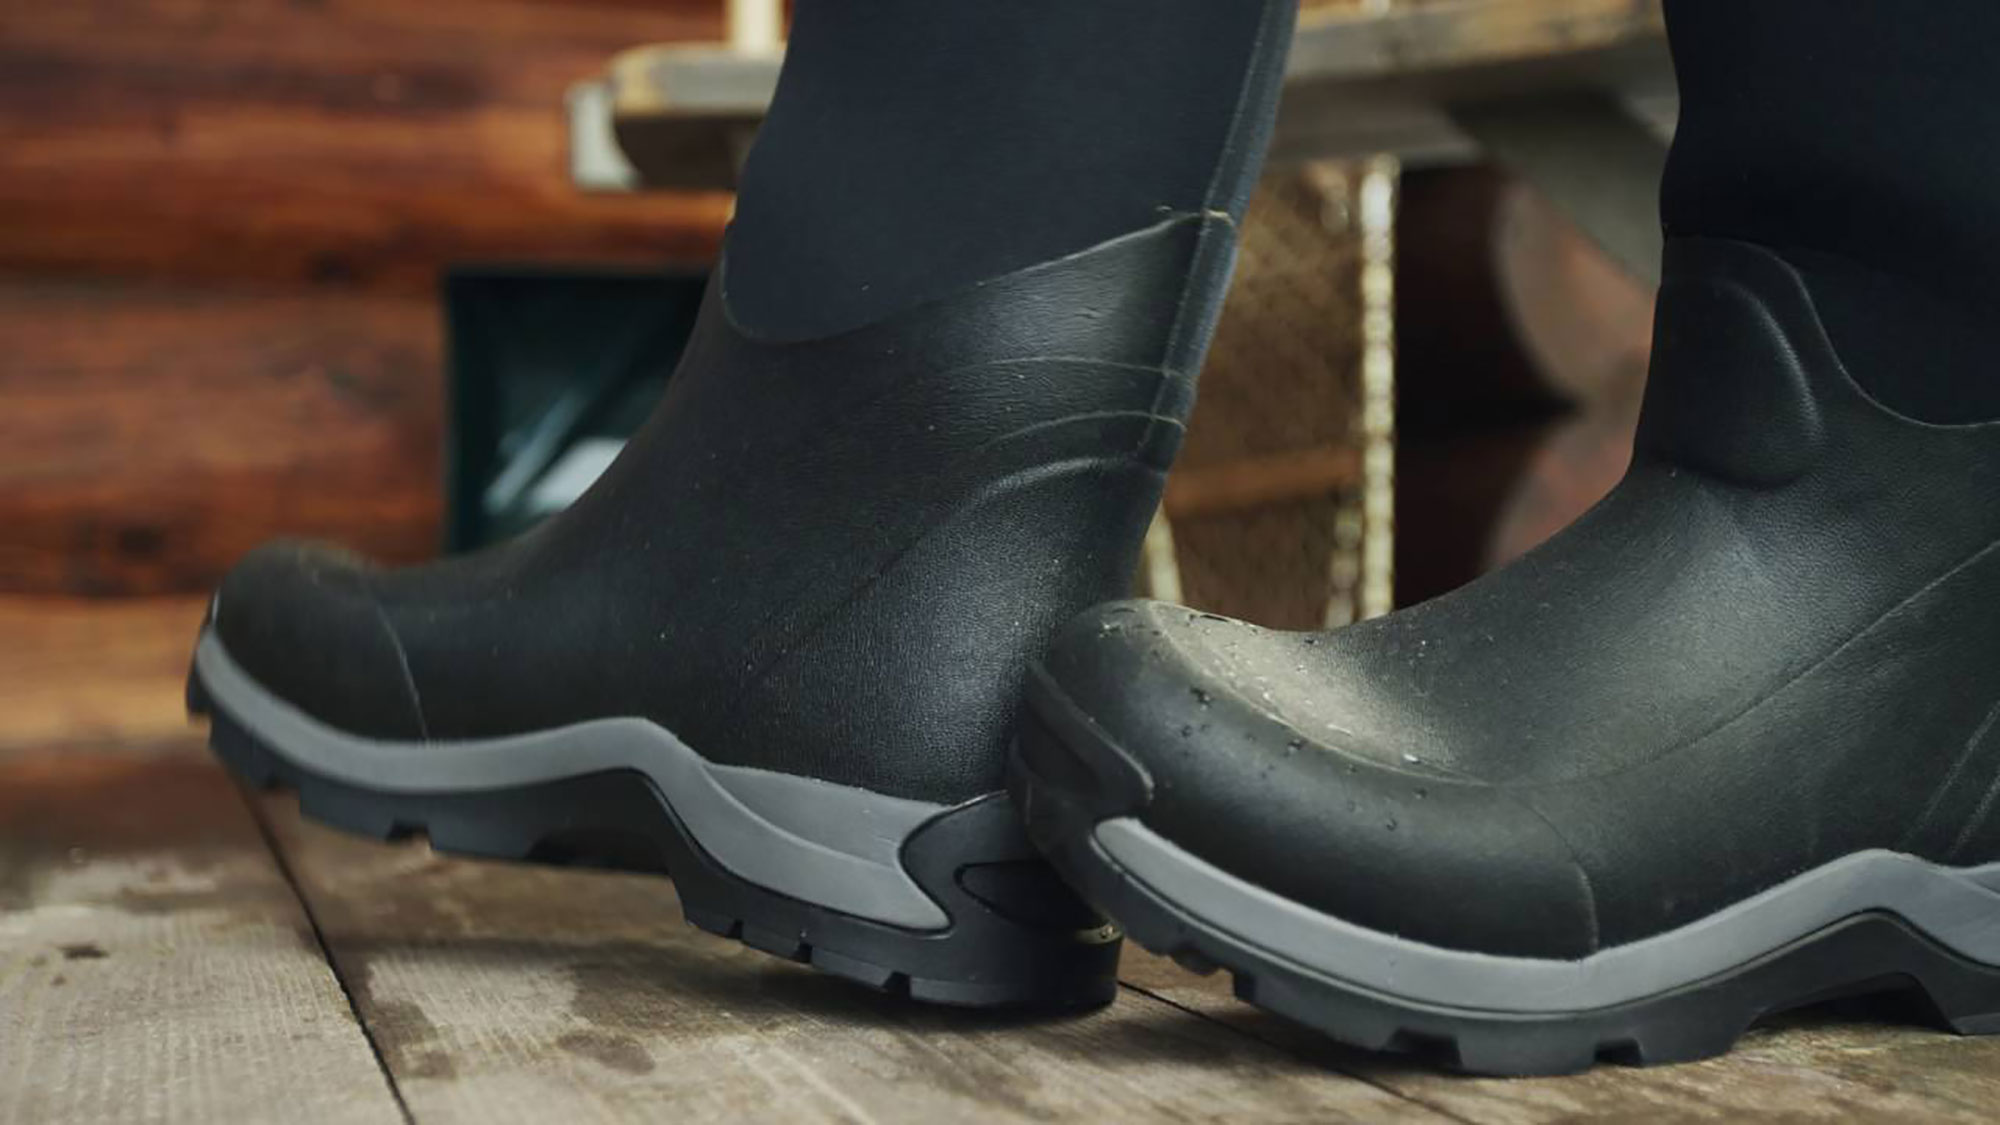 c5f02eed27c 4 of the warmest work boots for women farmers | AGDAILY